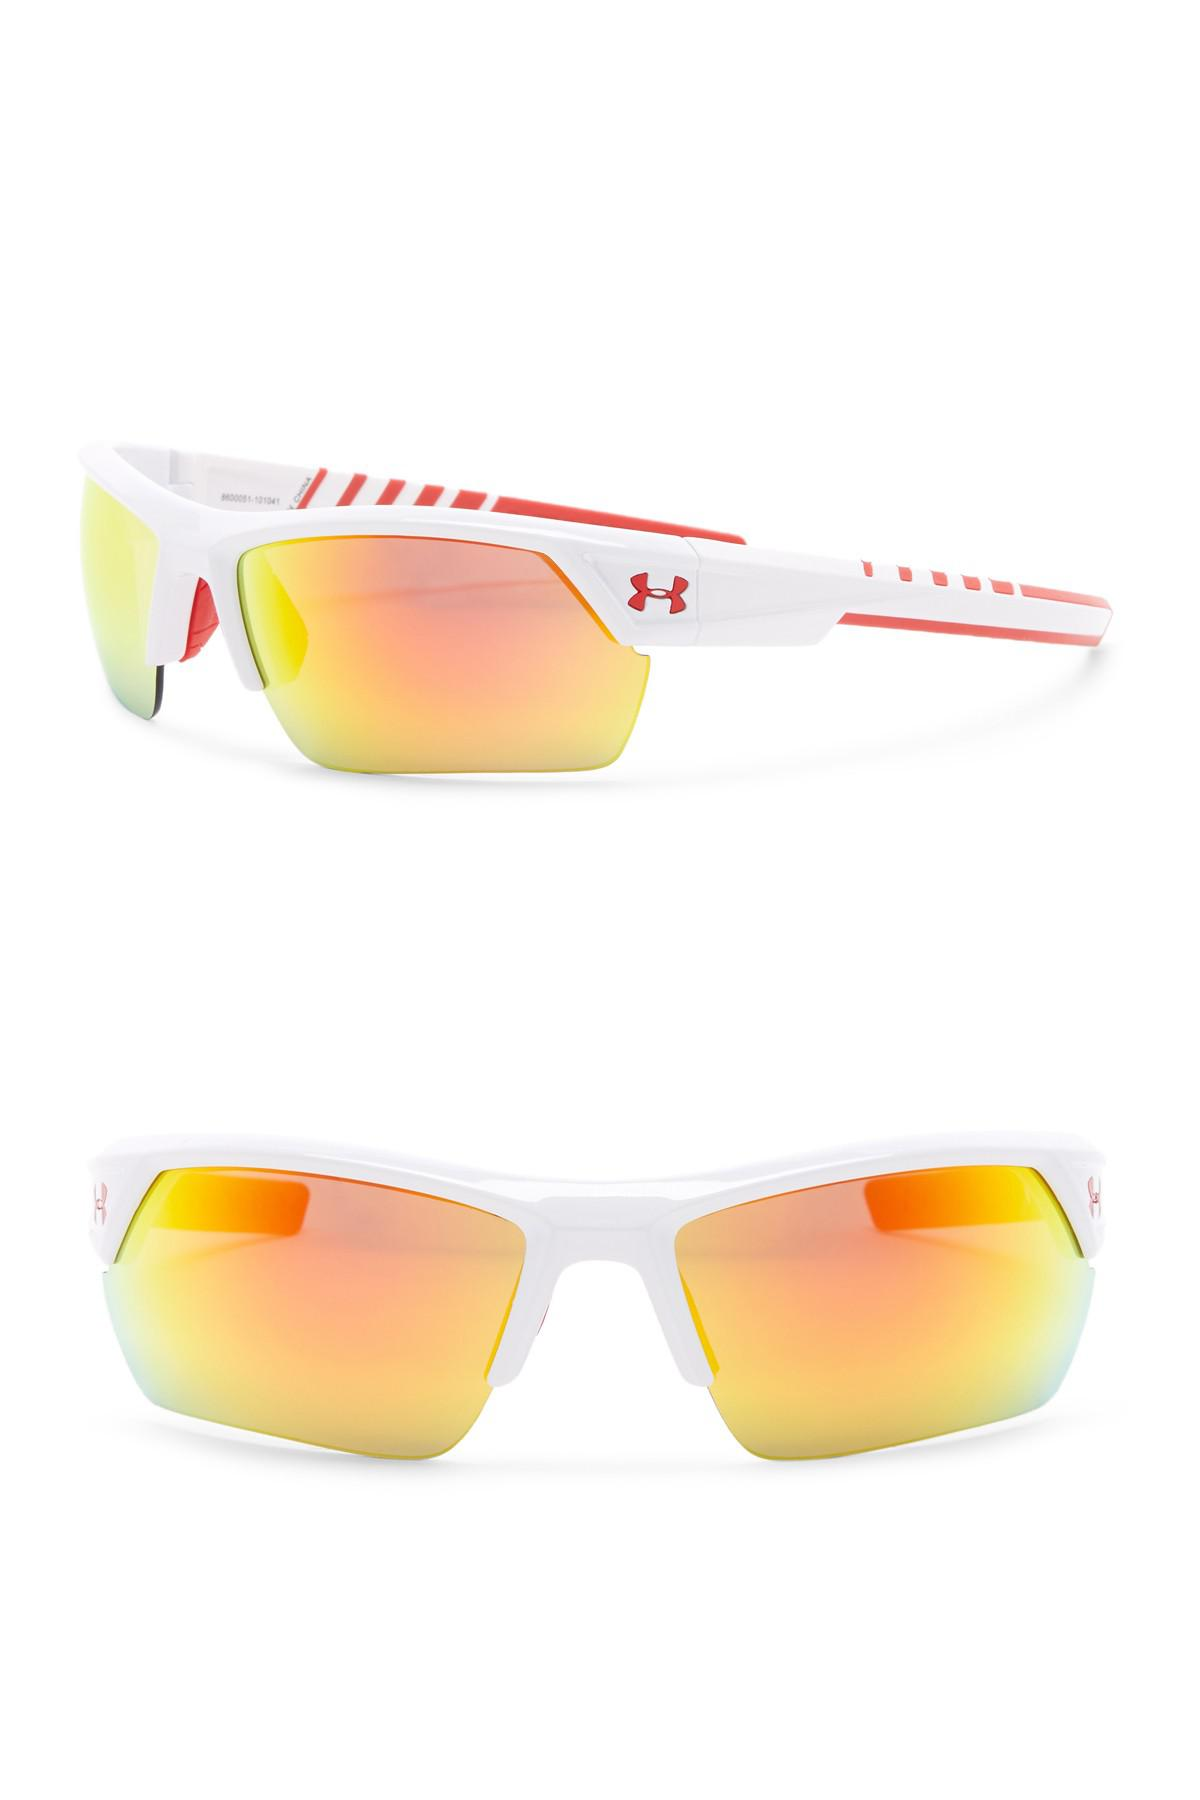 eb4470648c8 Lyst - Under Armour Igniter 2.0 Sunglasses in White for Men